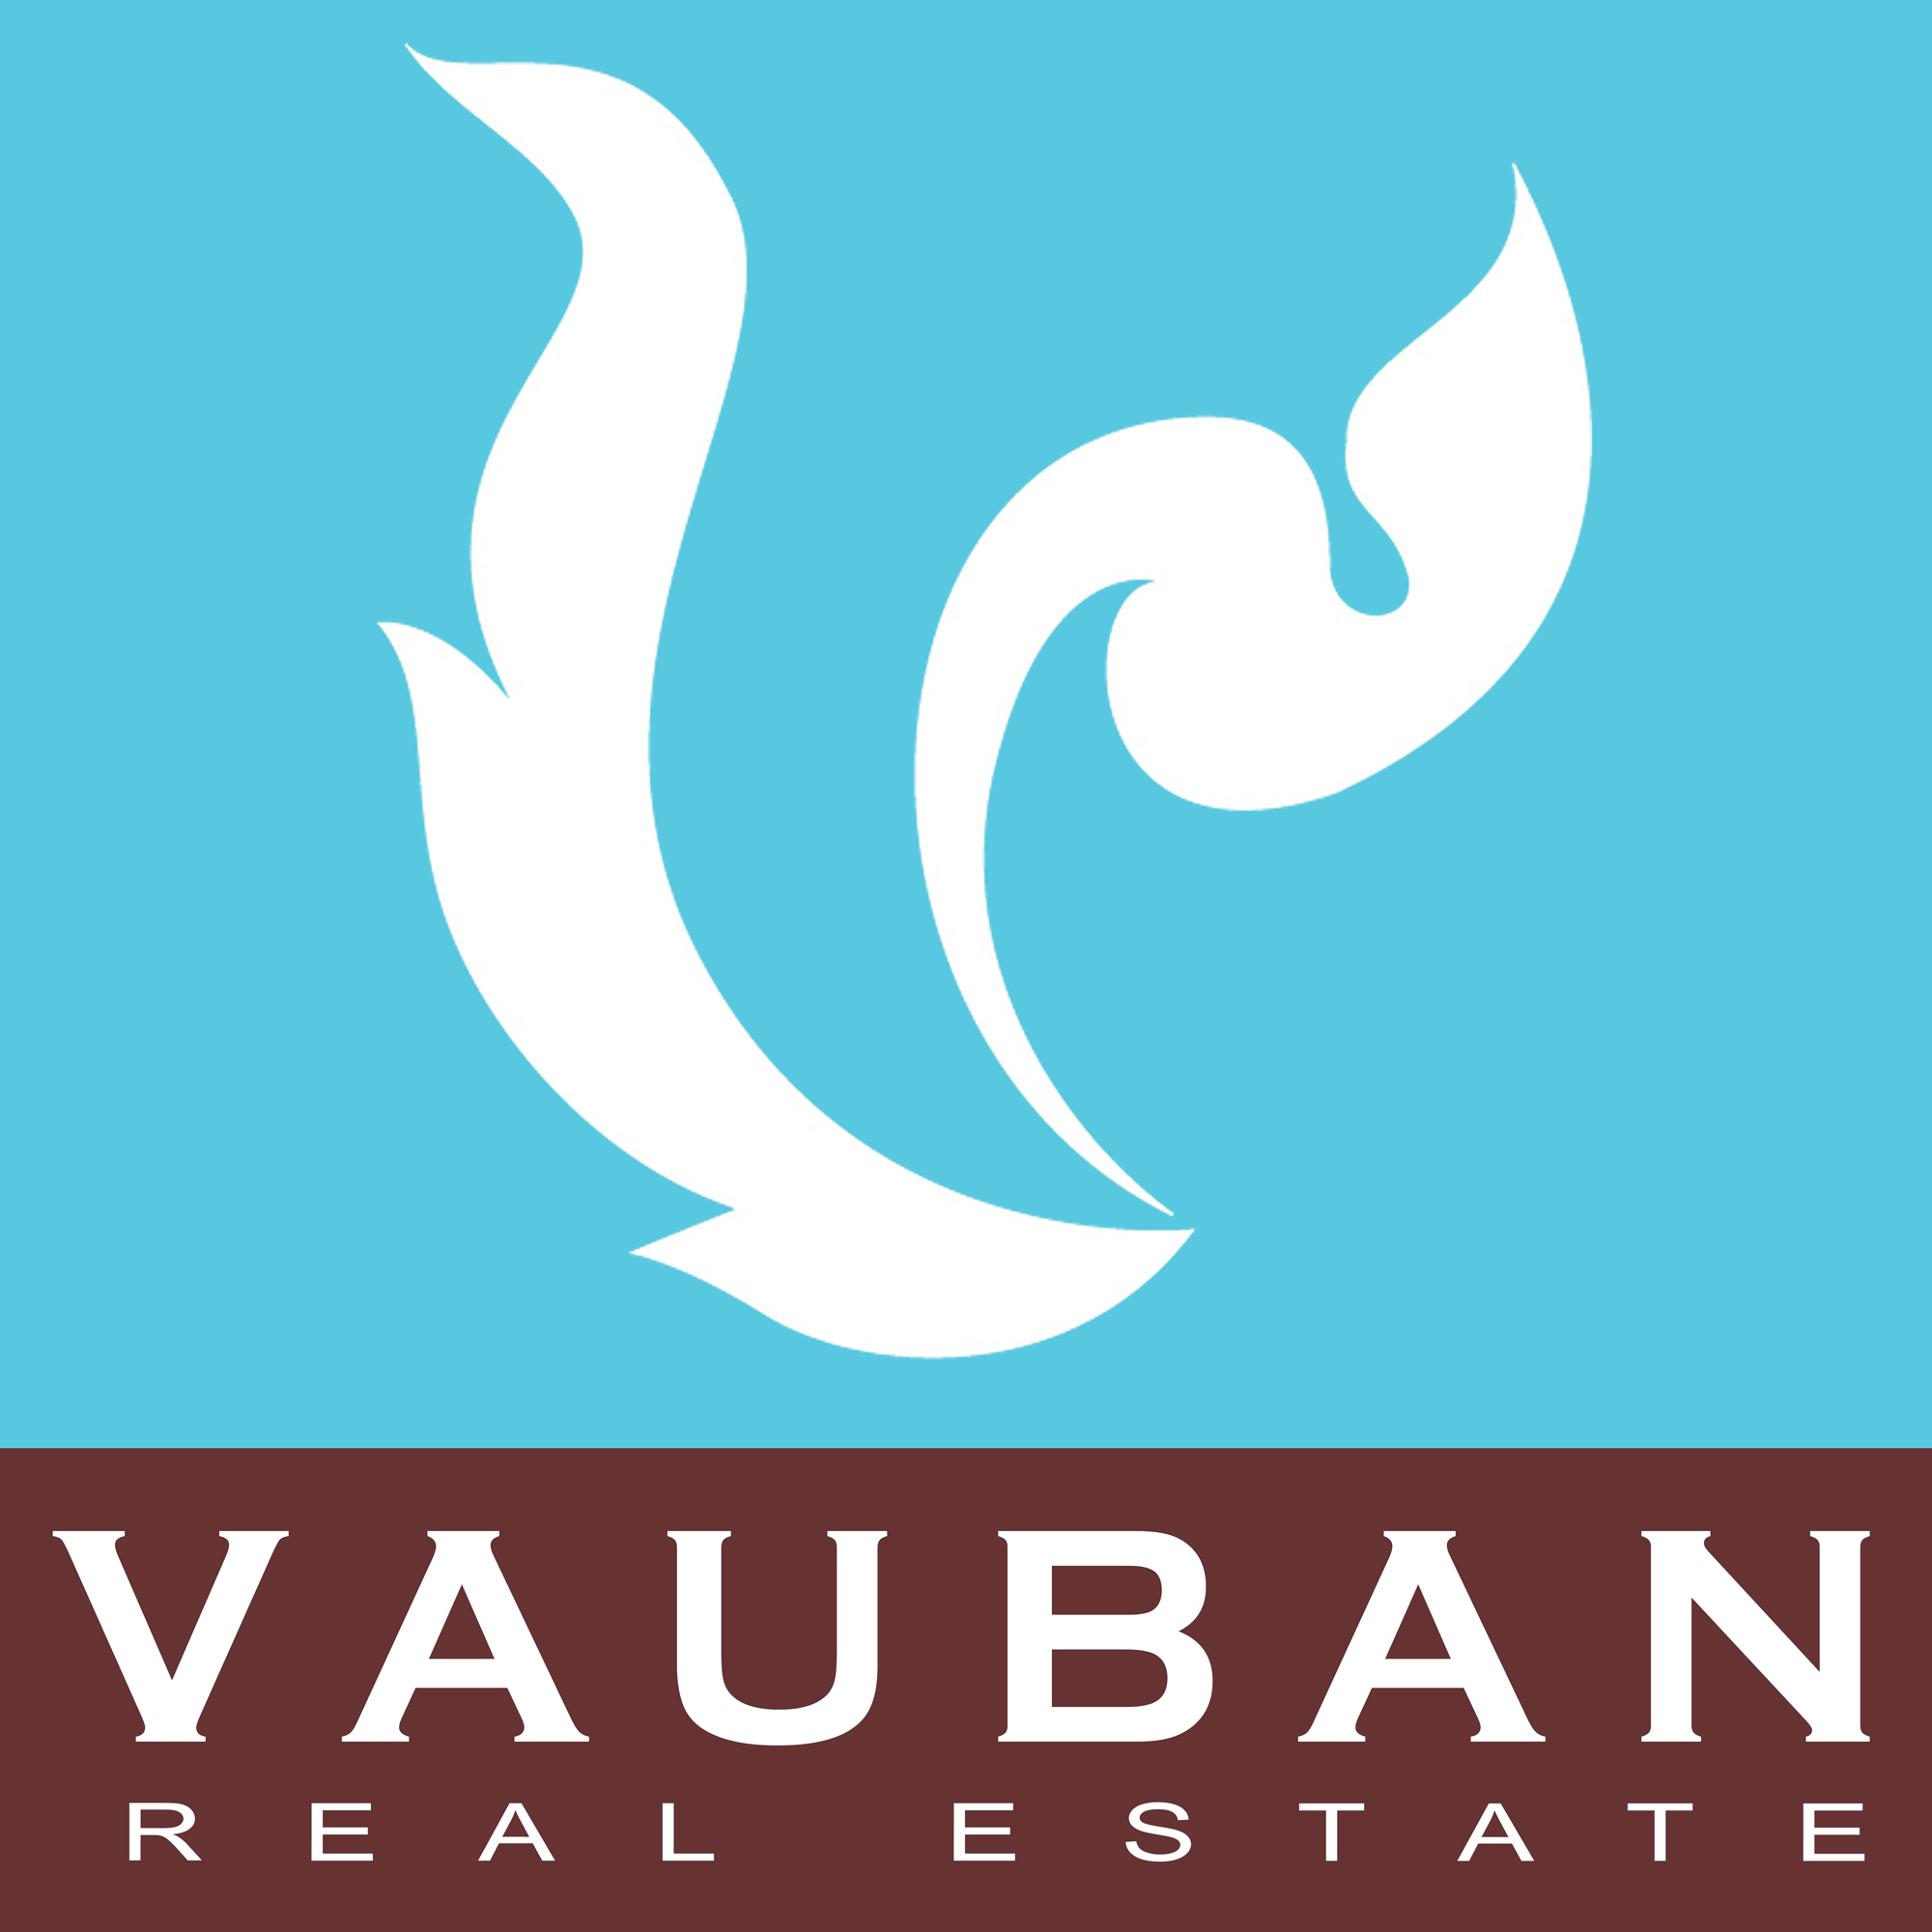 Company Vauban Co., LTD Logo